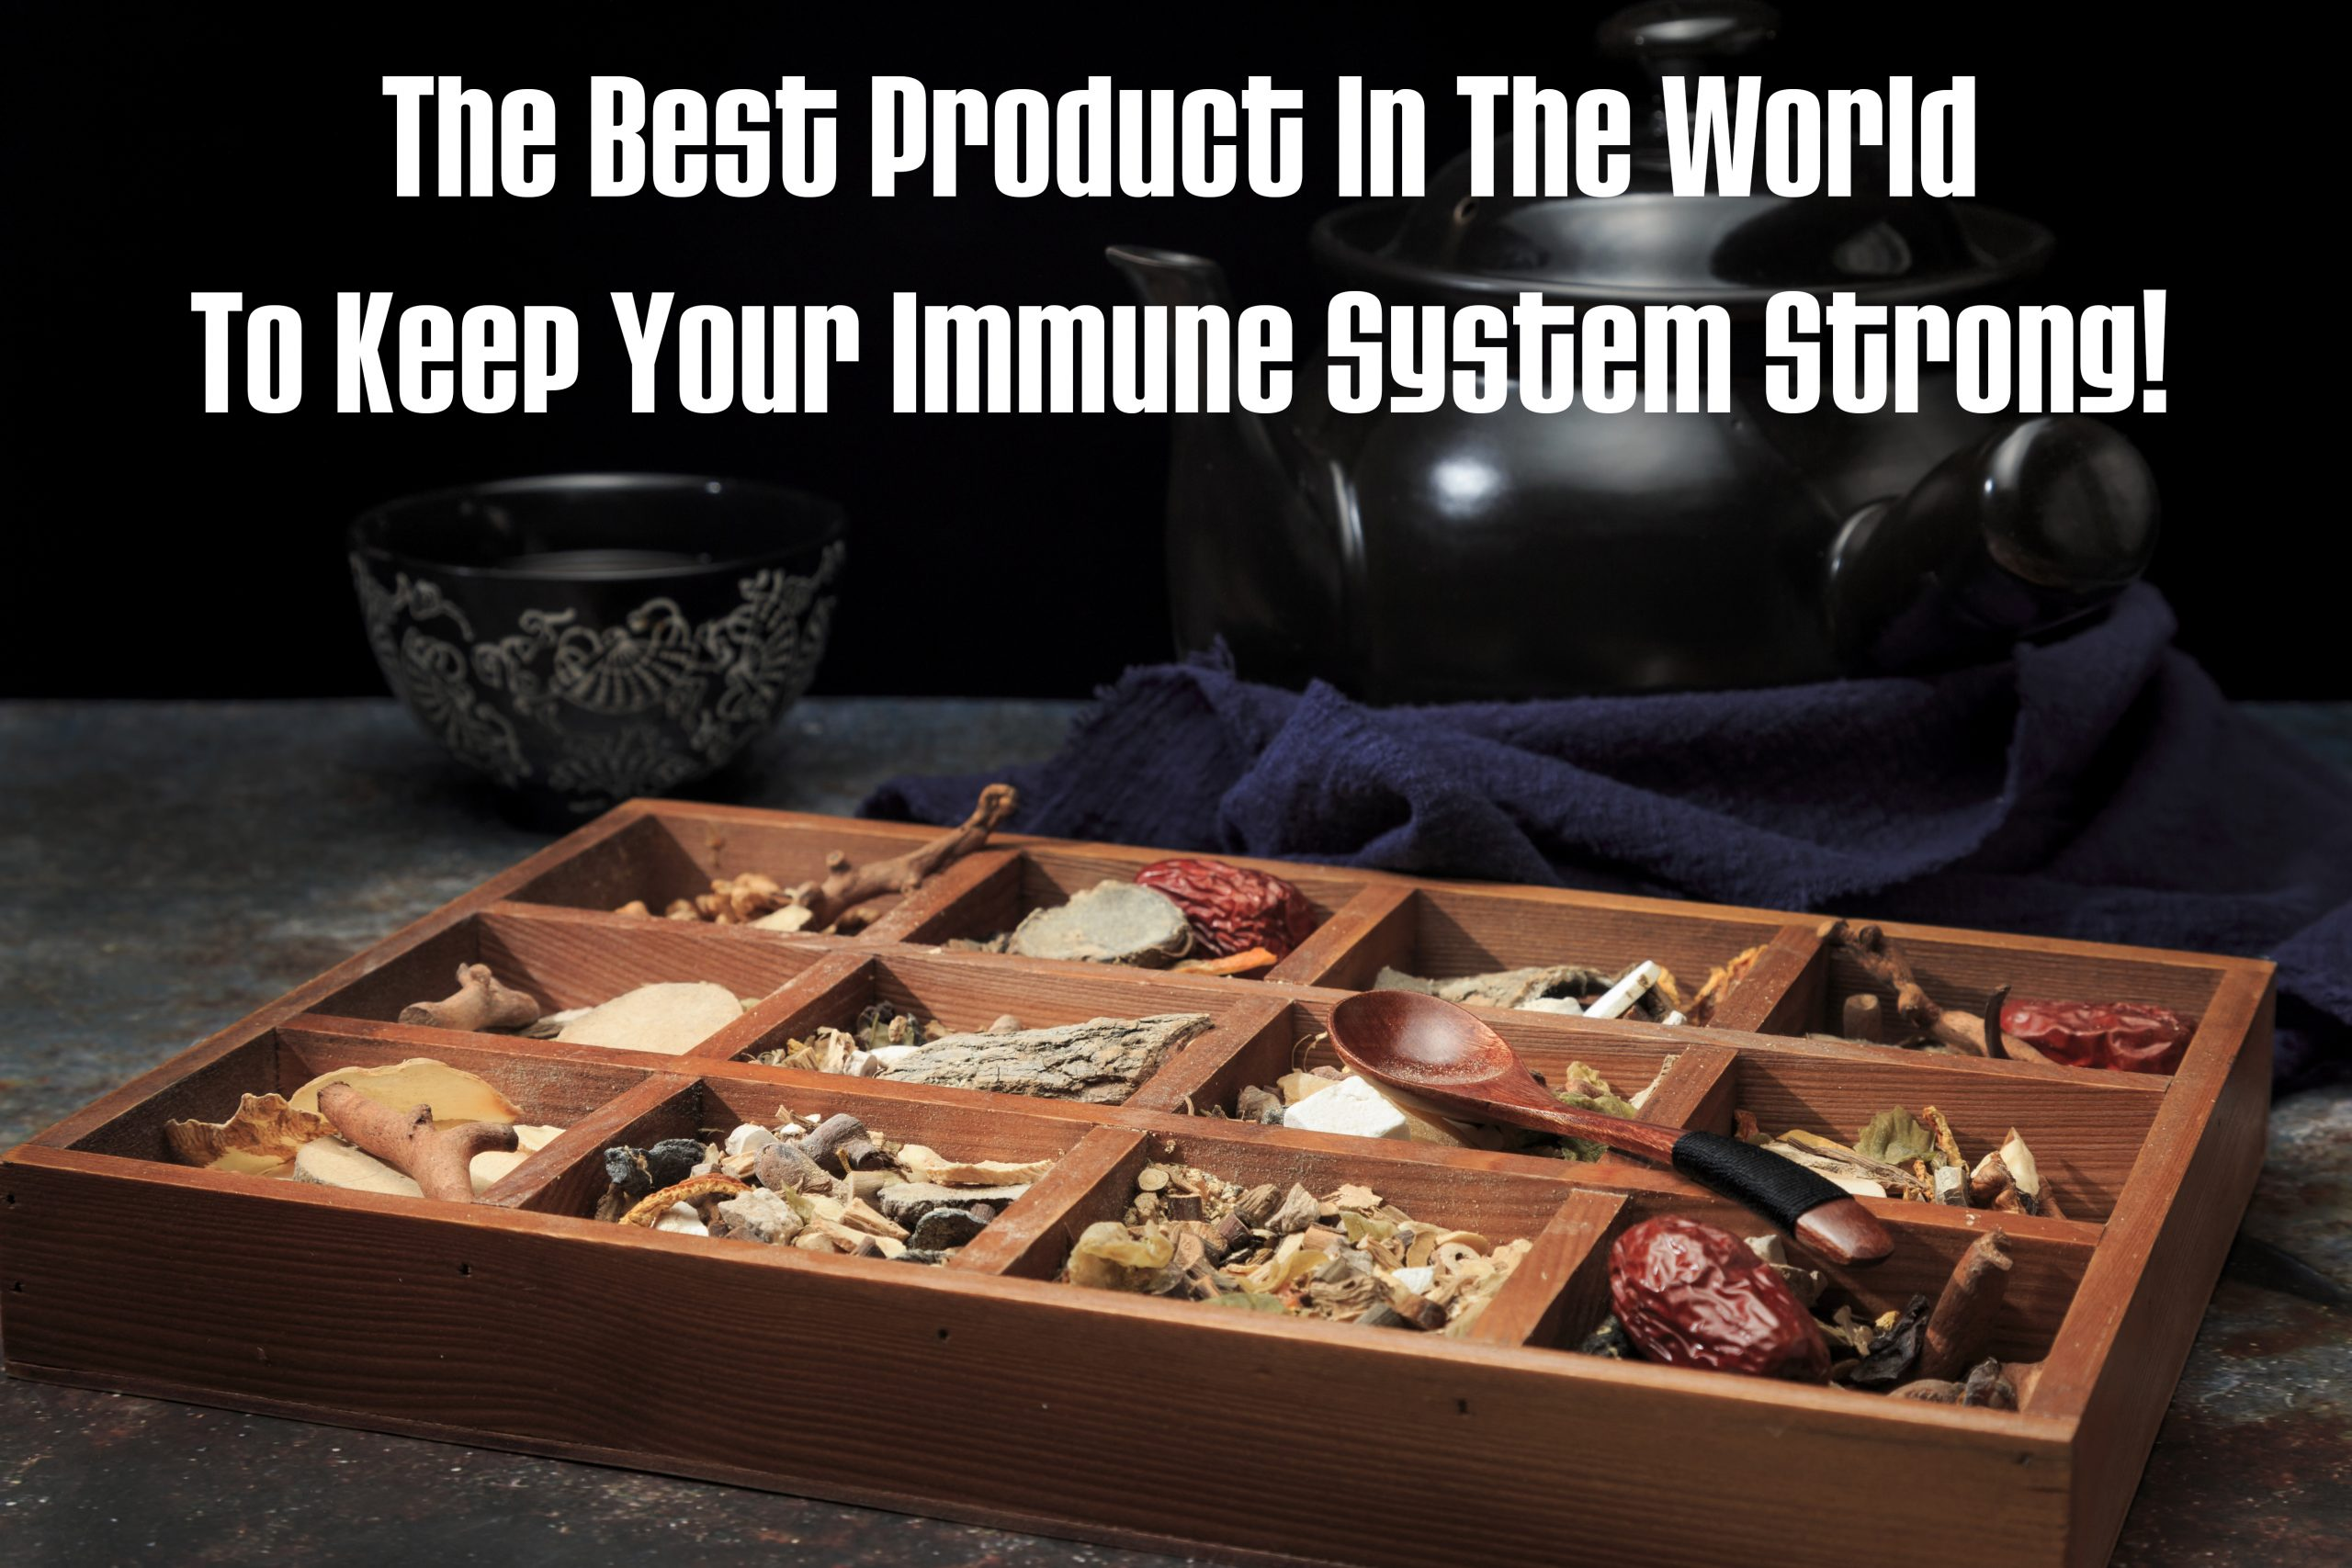 Immune System Strong